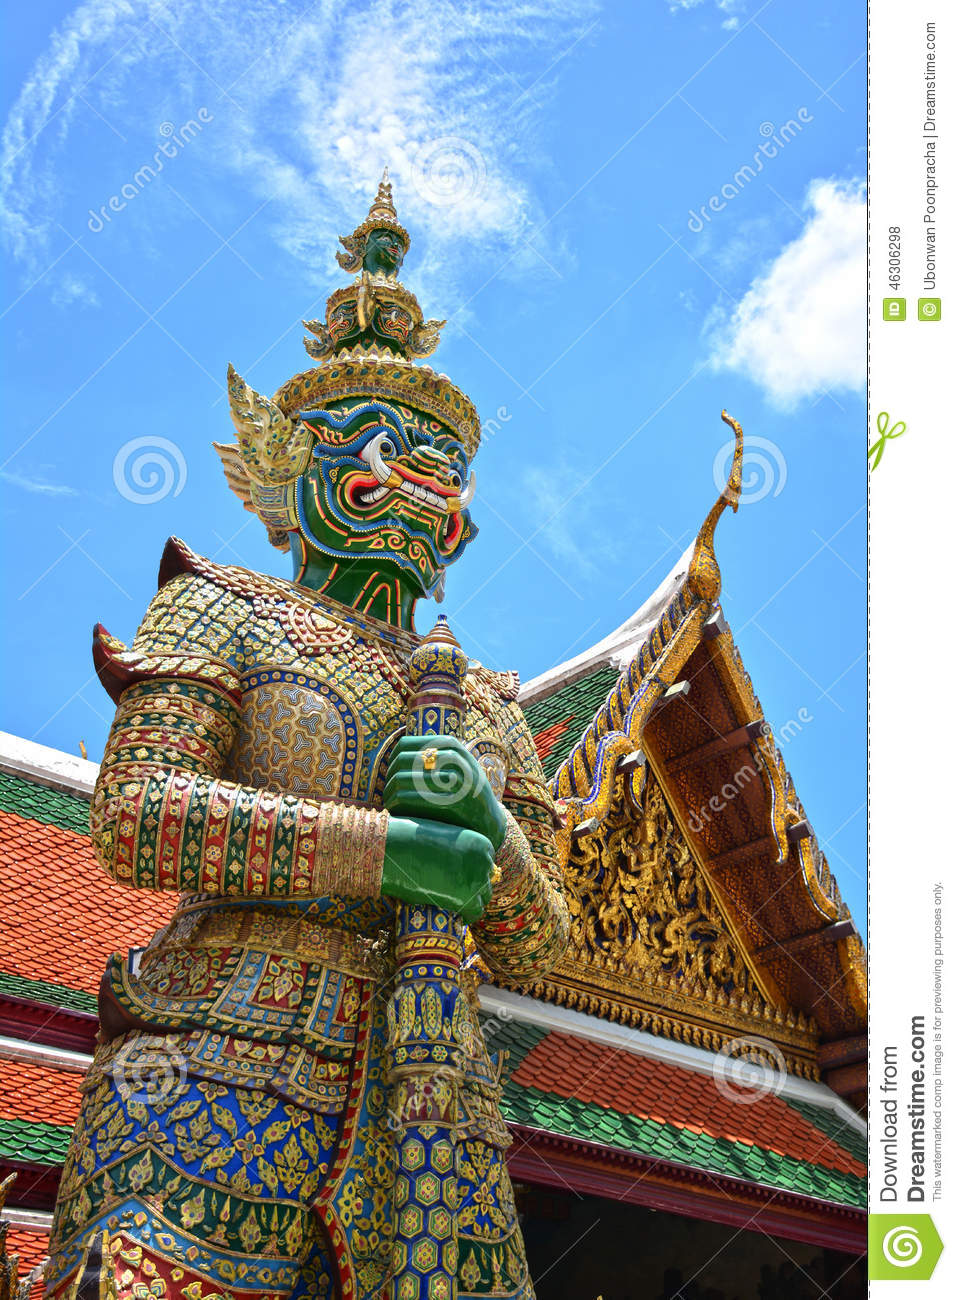 Giant Statue In Wat Phra Kaew Grand Palace Bangkok Thailand Stock